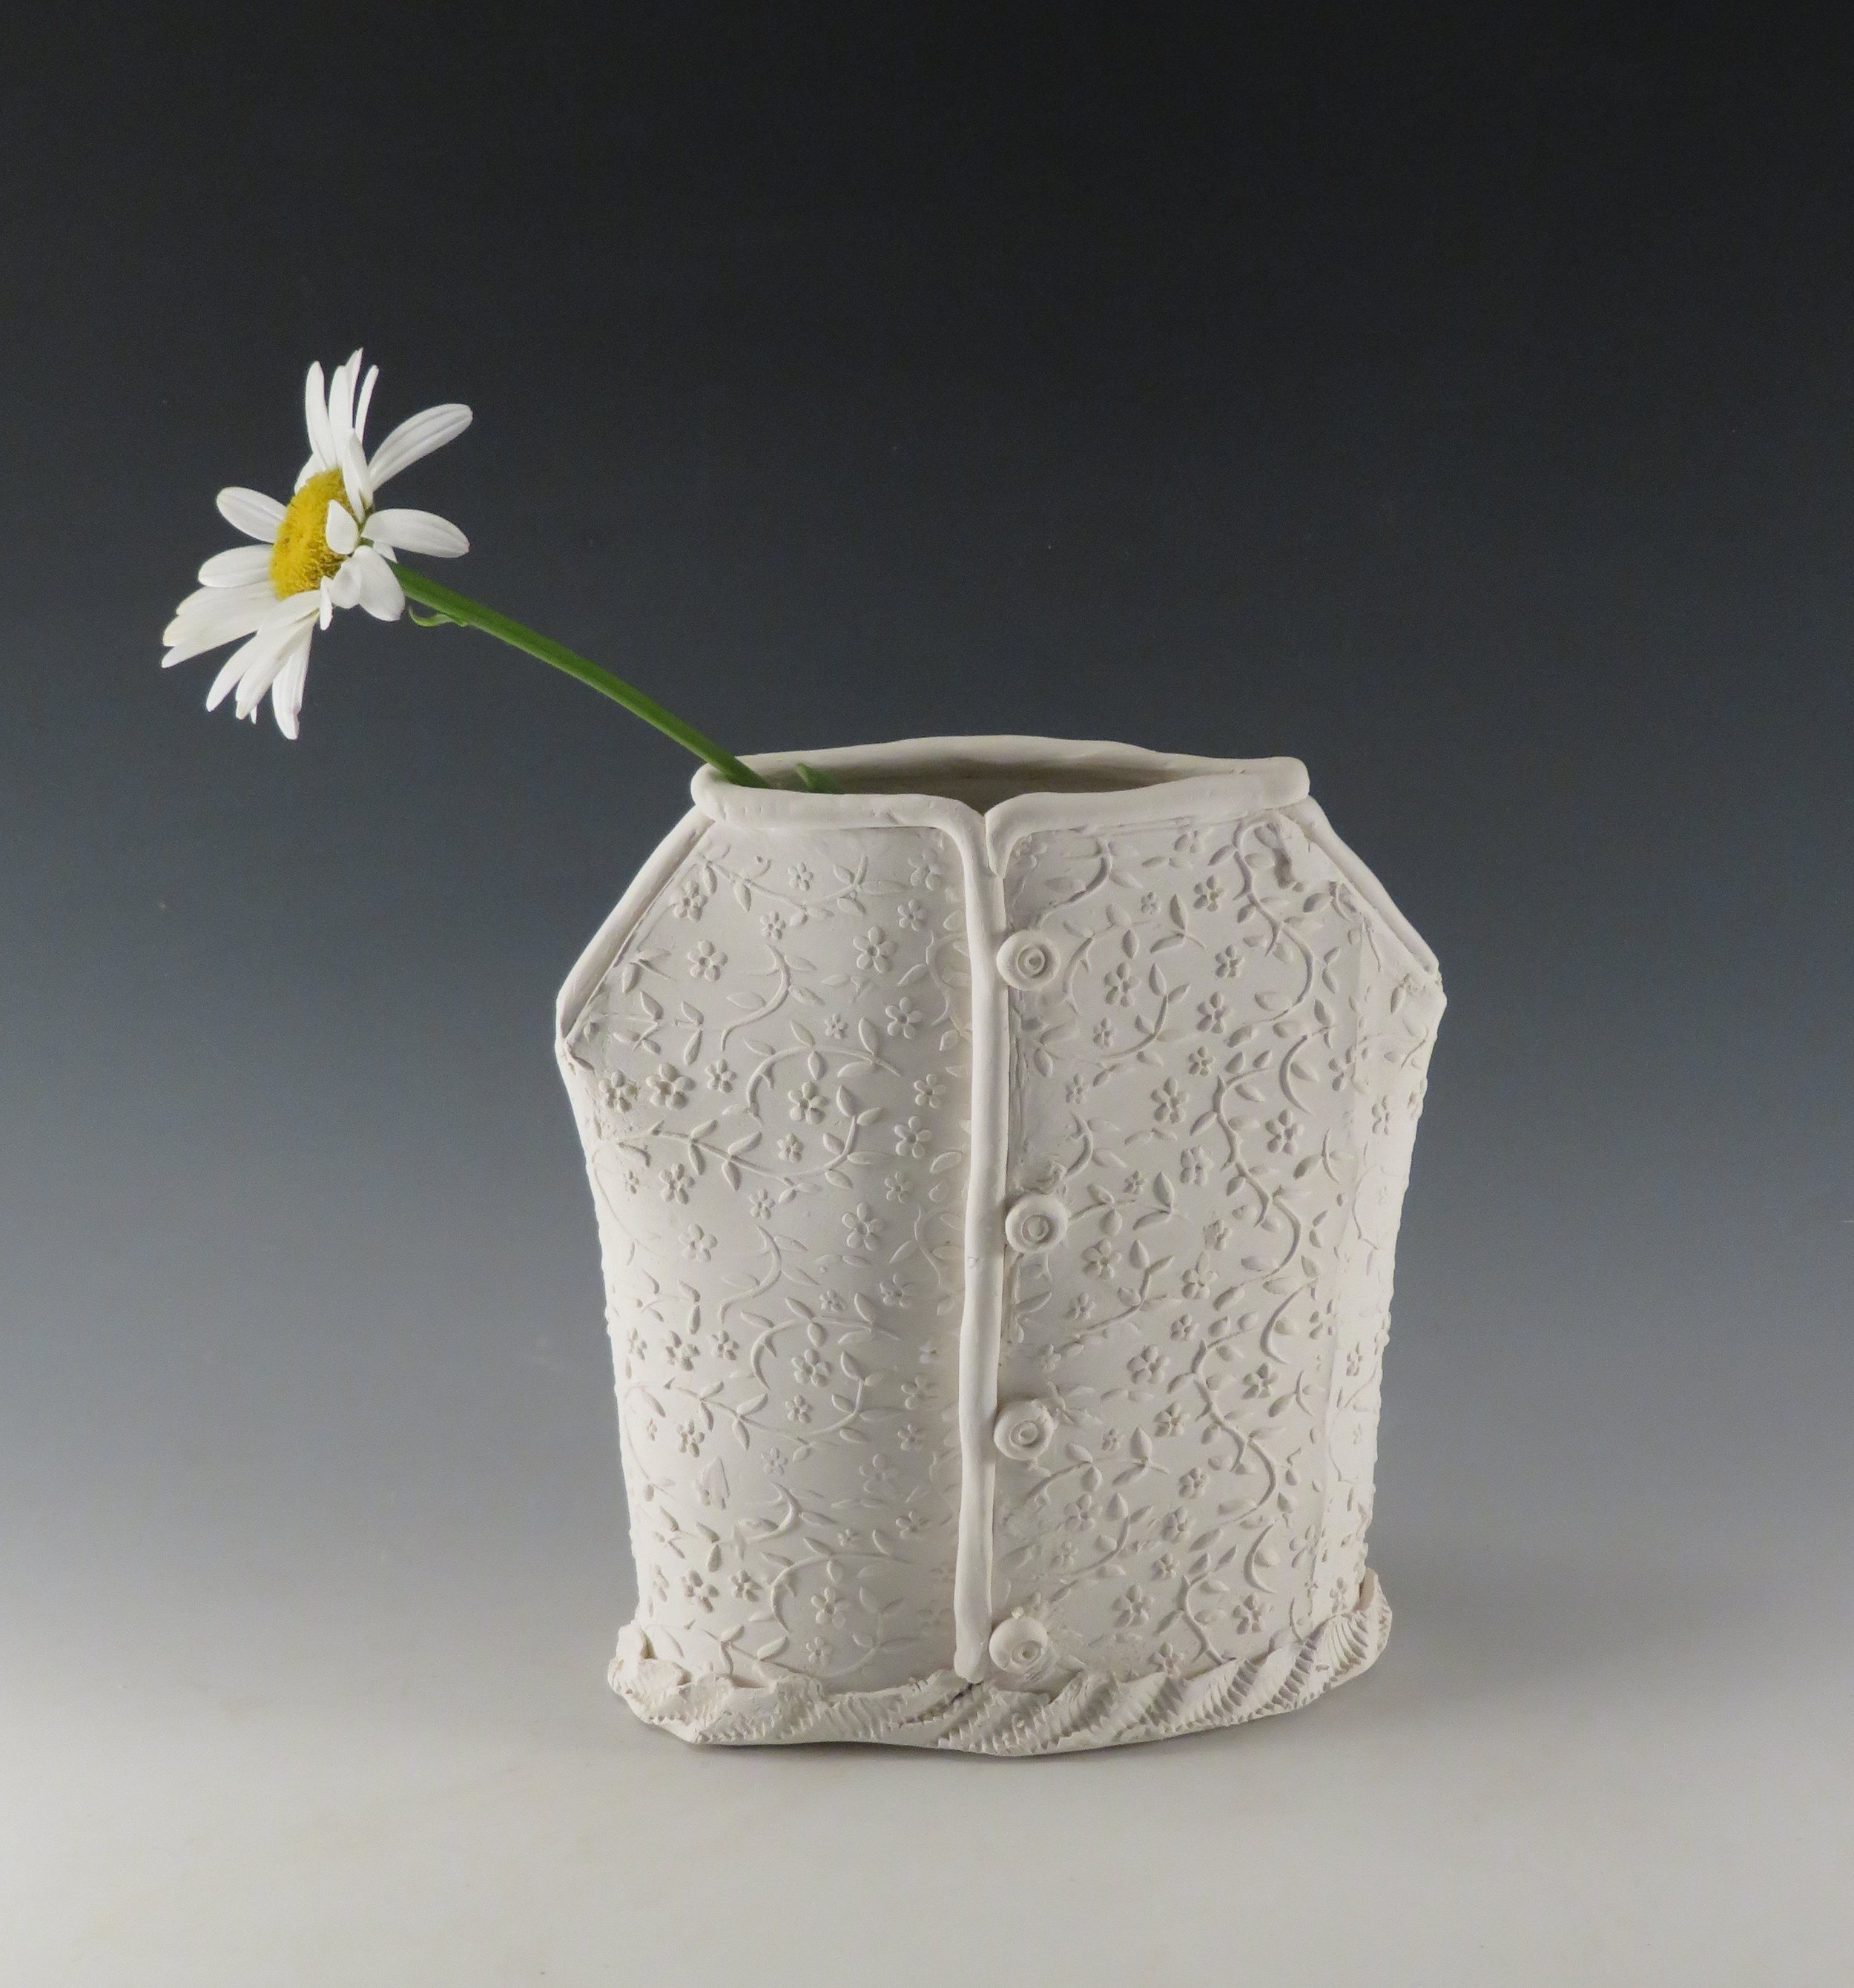 Handbuilt white dress vase